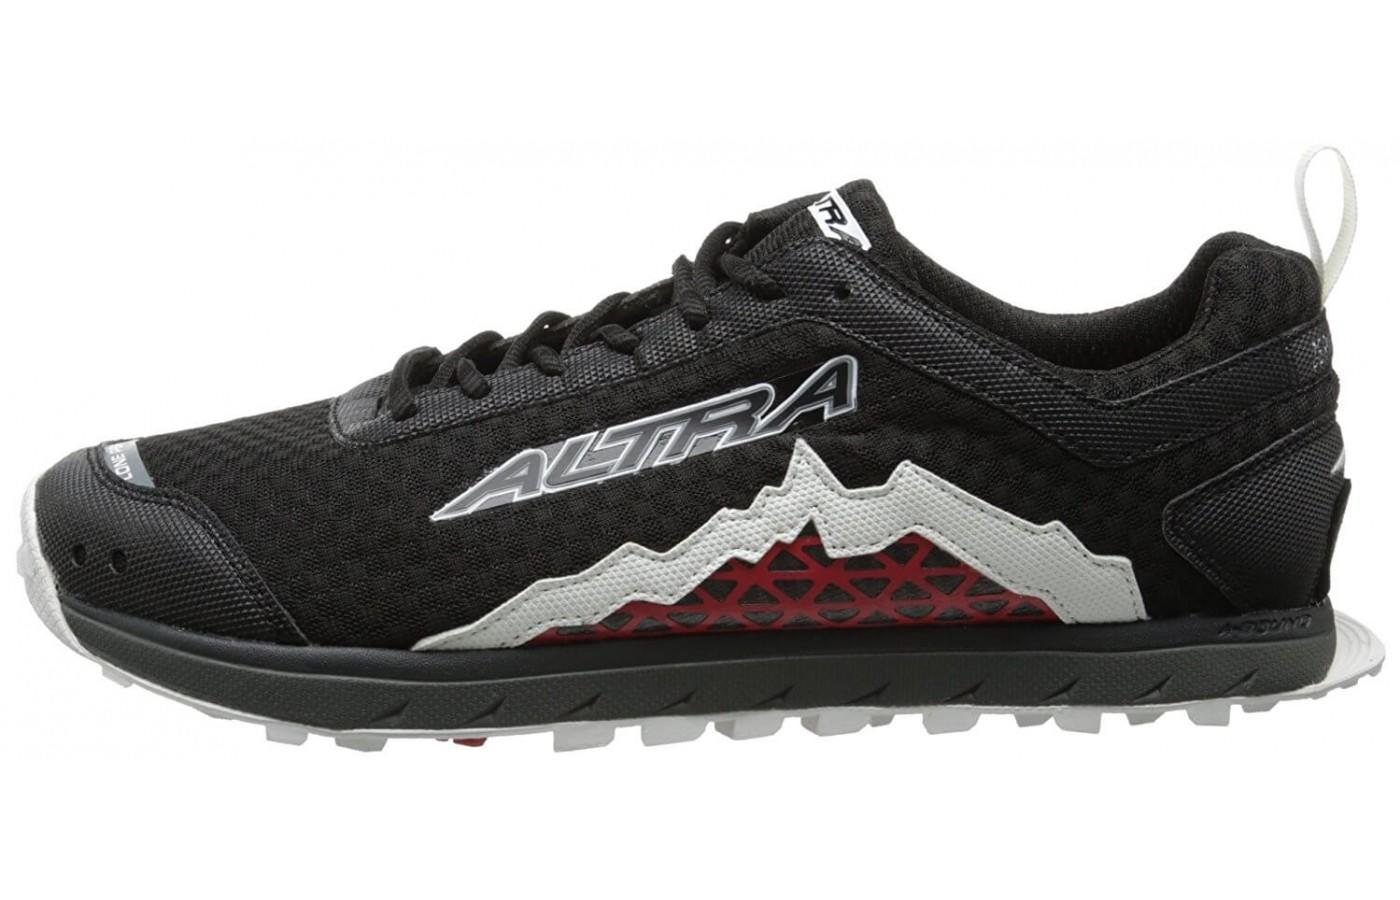 Altra Lone Peak 1.5 features wide toe box